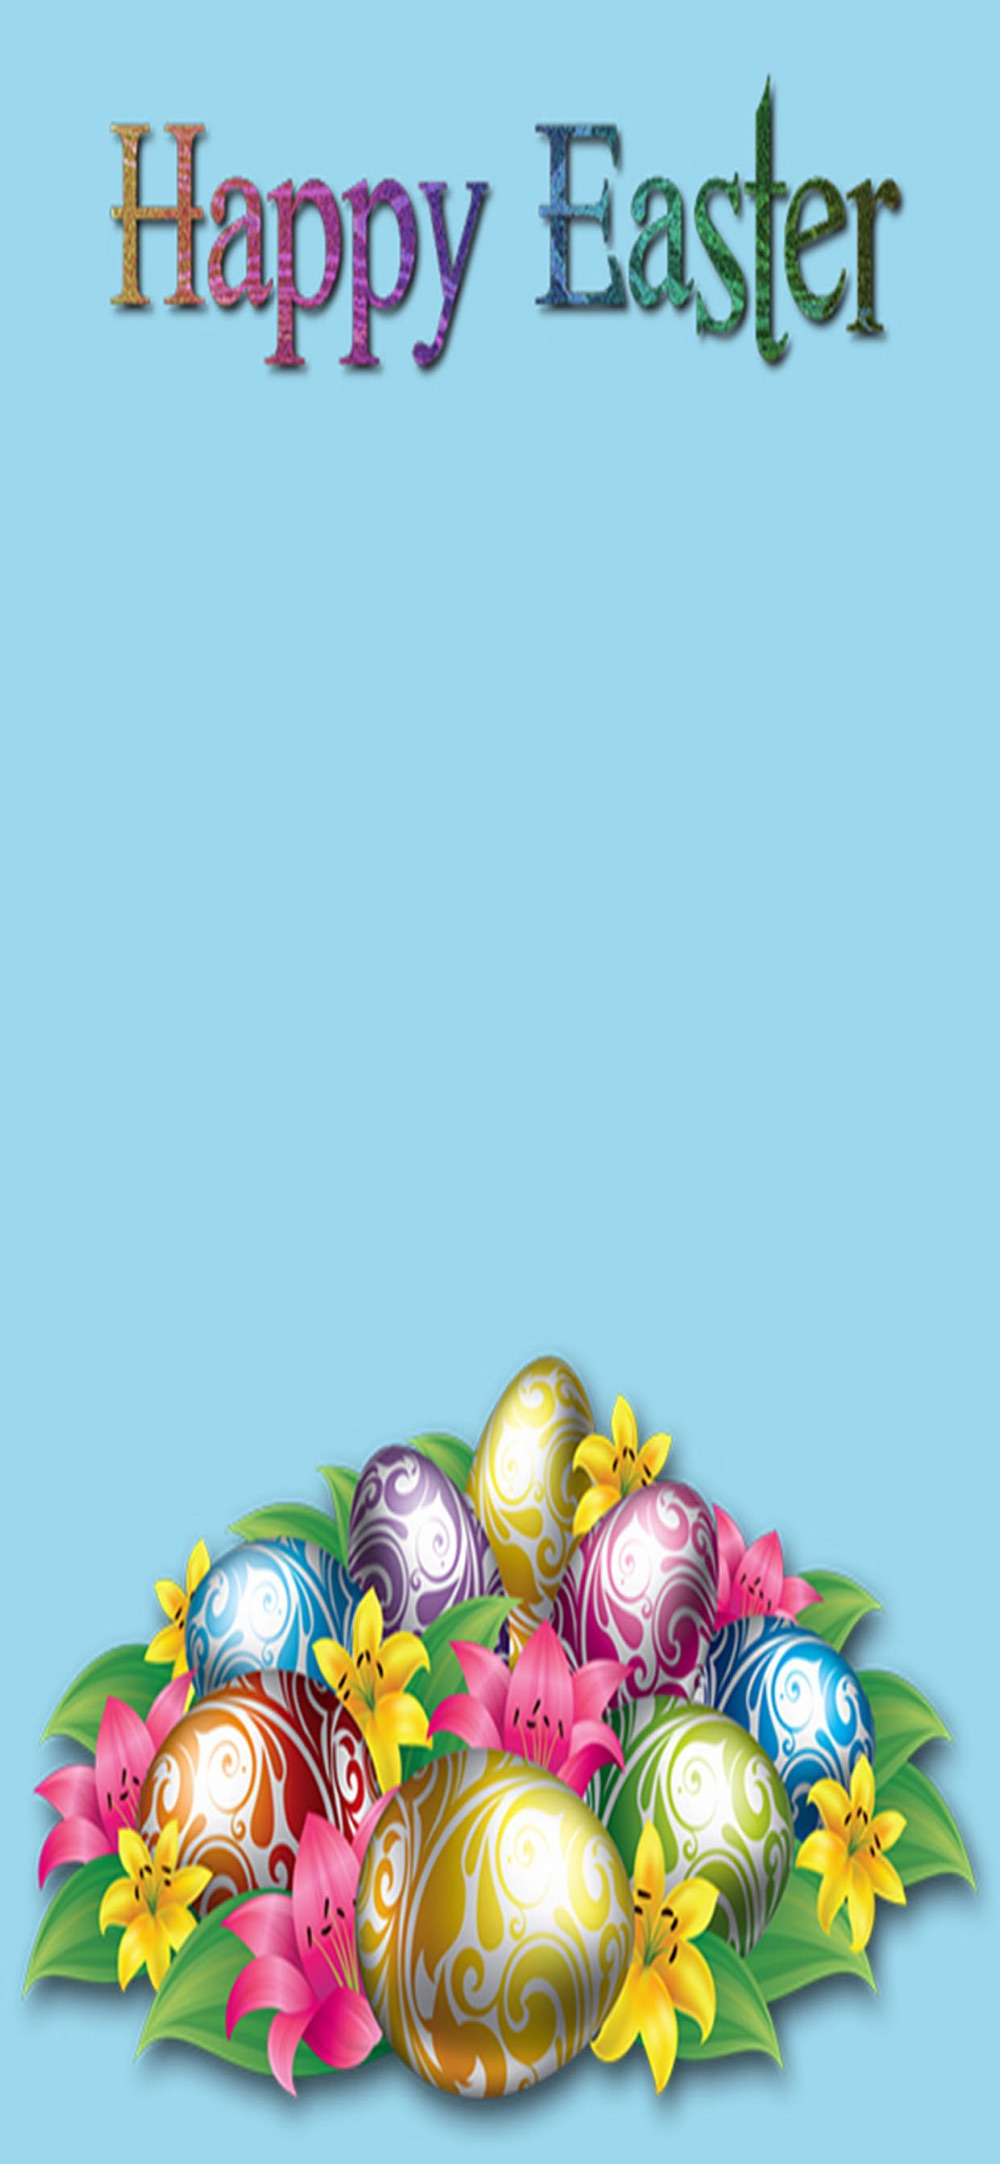 Happy Easter Day- Photo Editor